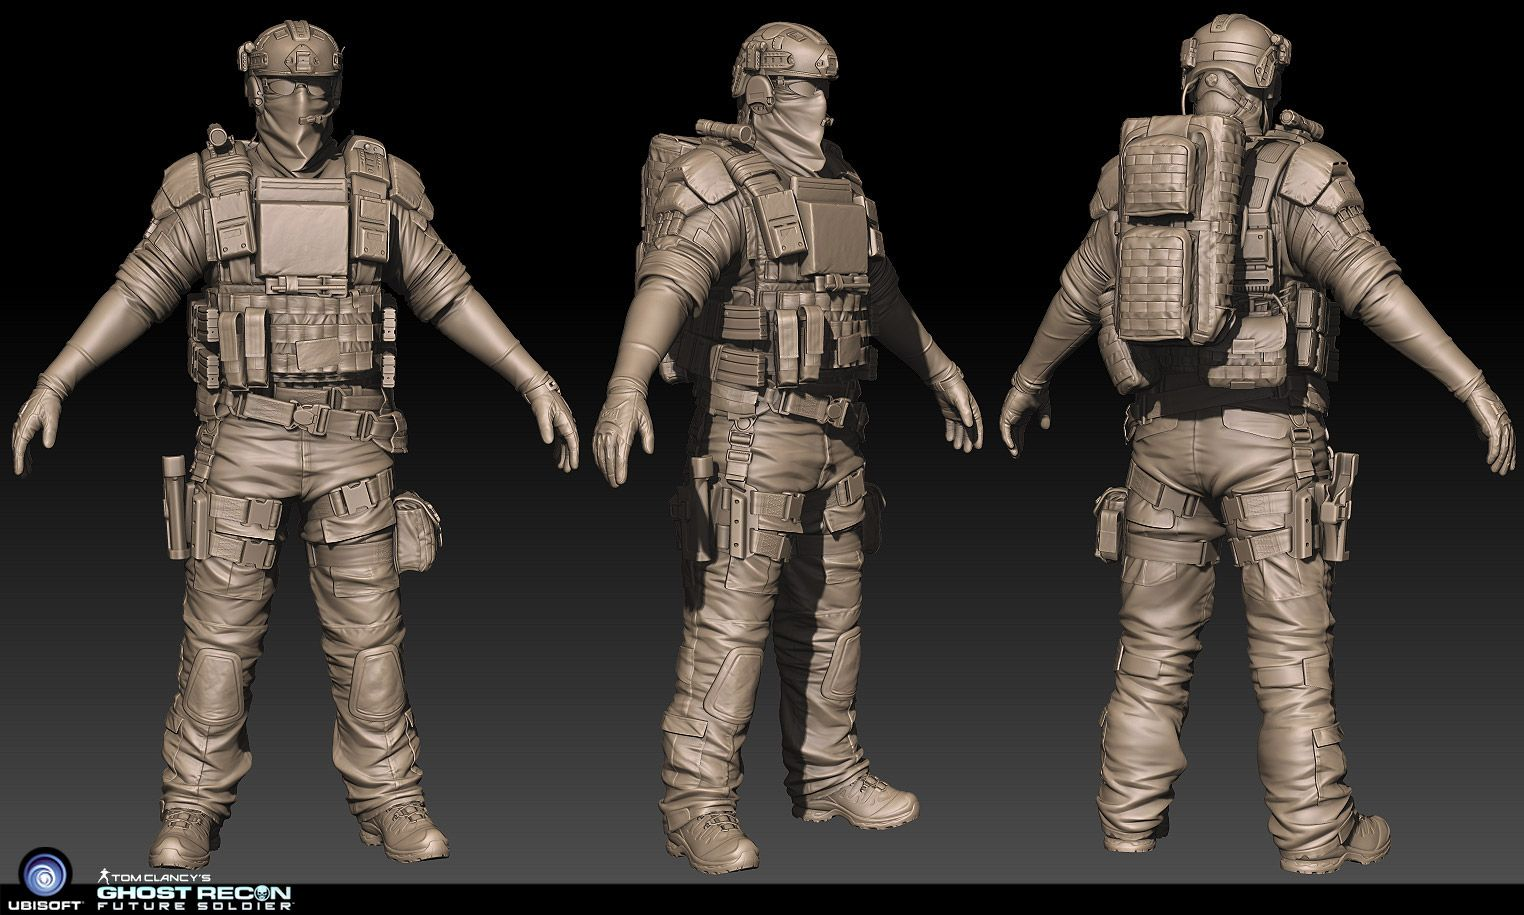 ghost recon zbrush work | CG Stuff | Pinterest | ZBrush, 3d and 3d ...